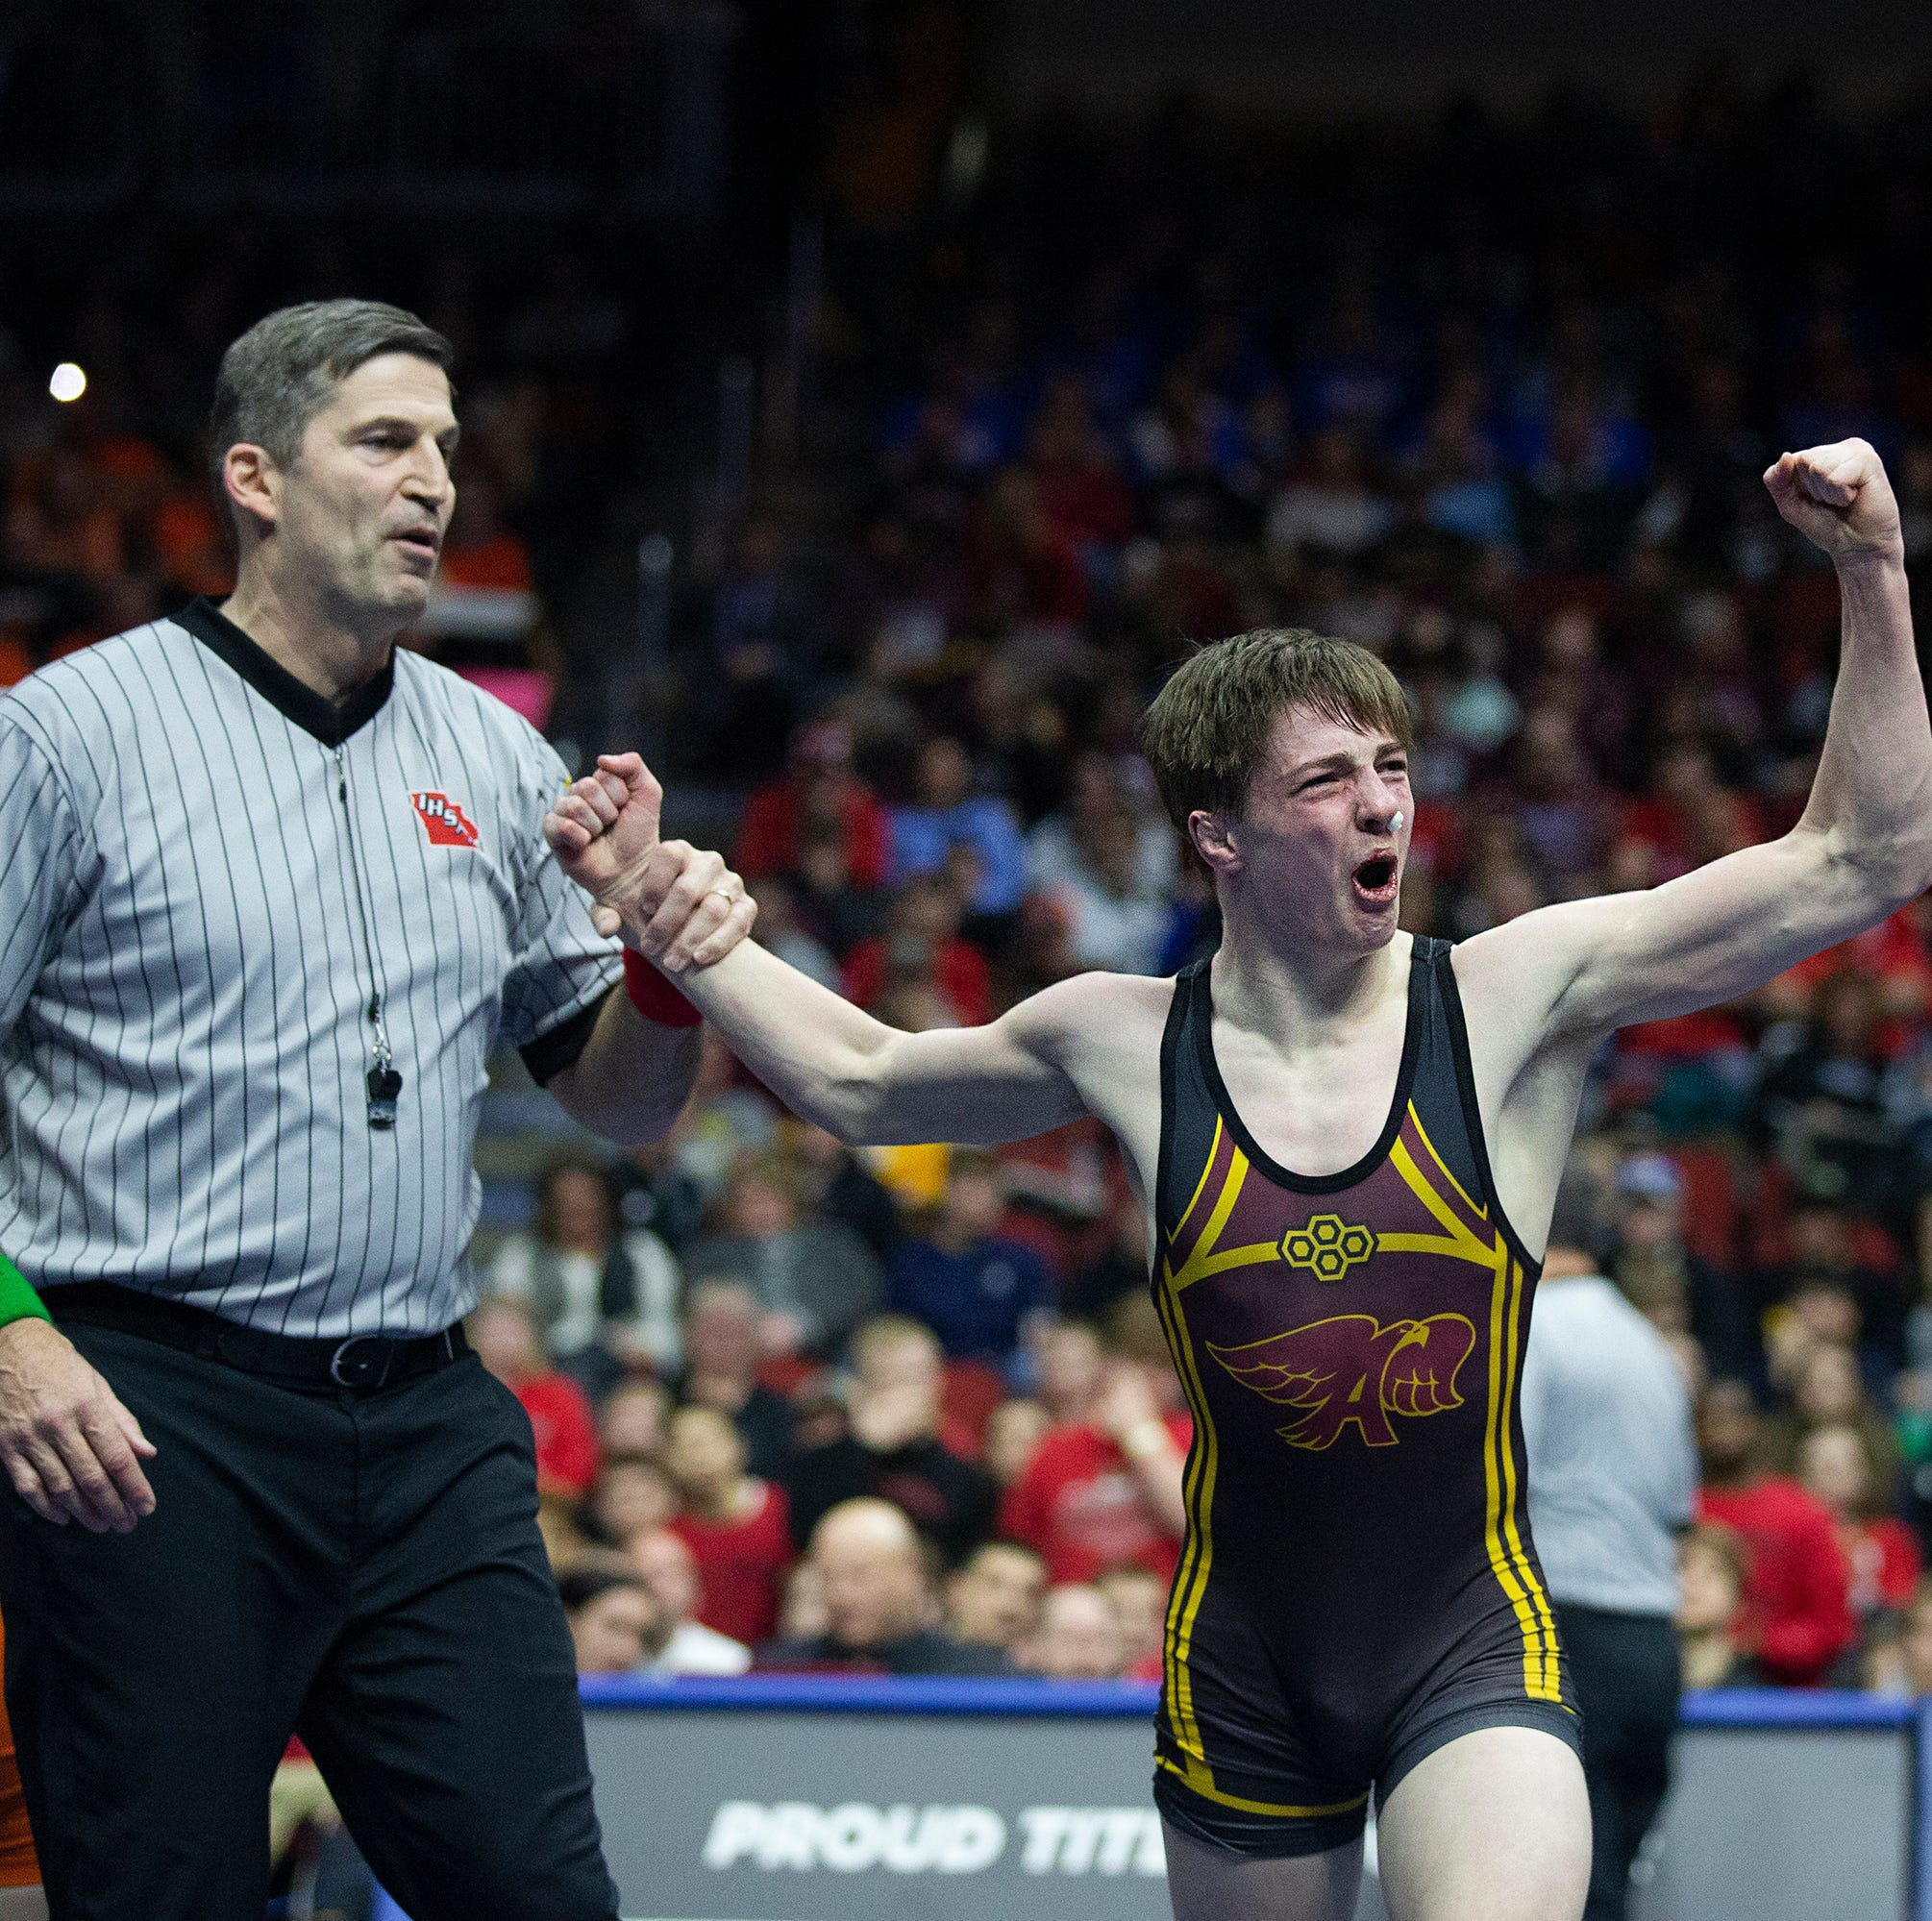 State wrestling: Ankeny schools showcase wrestling strength, promise in Class 3A finals